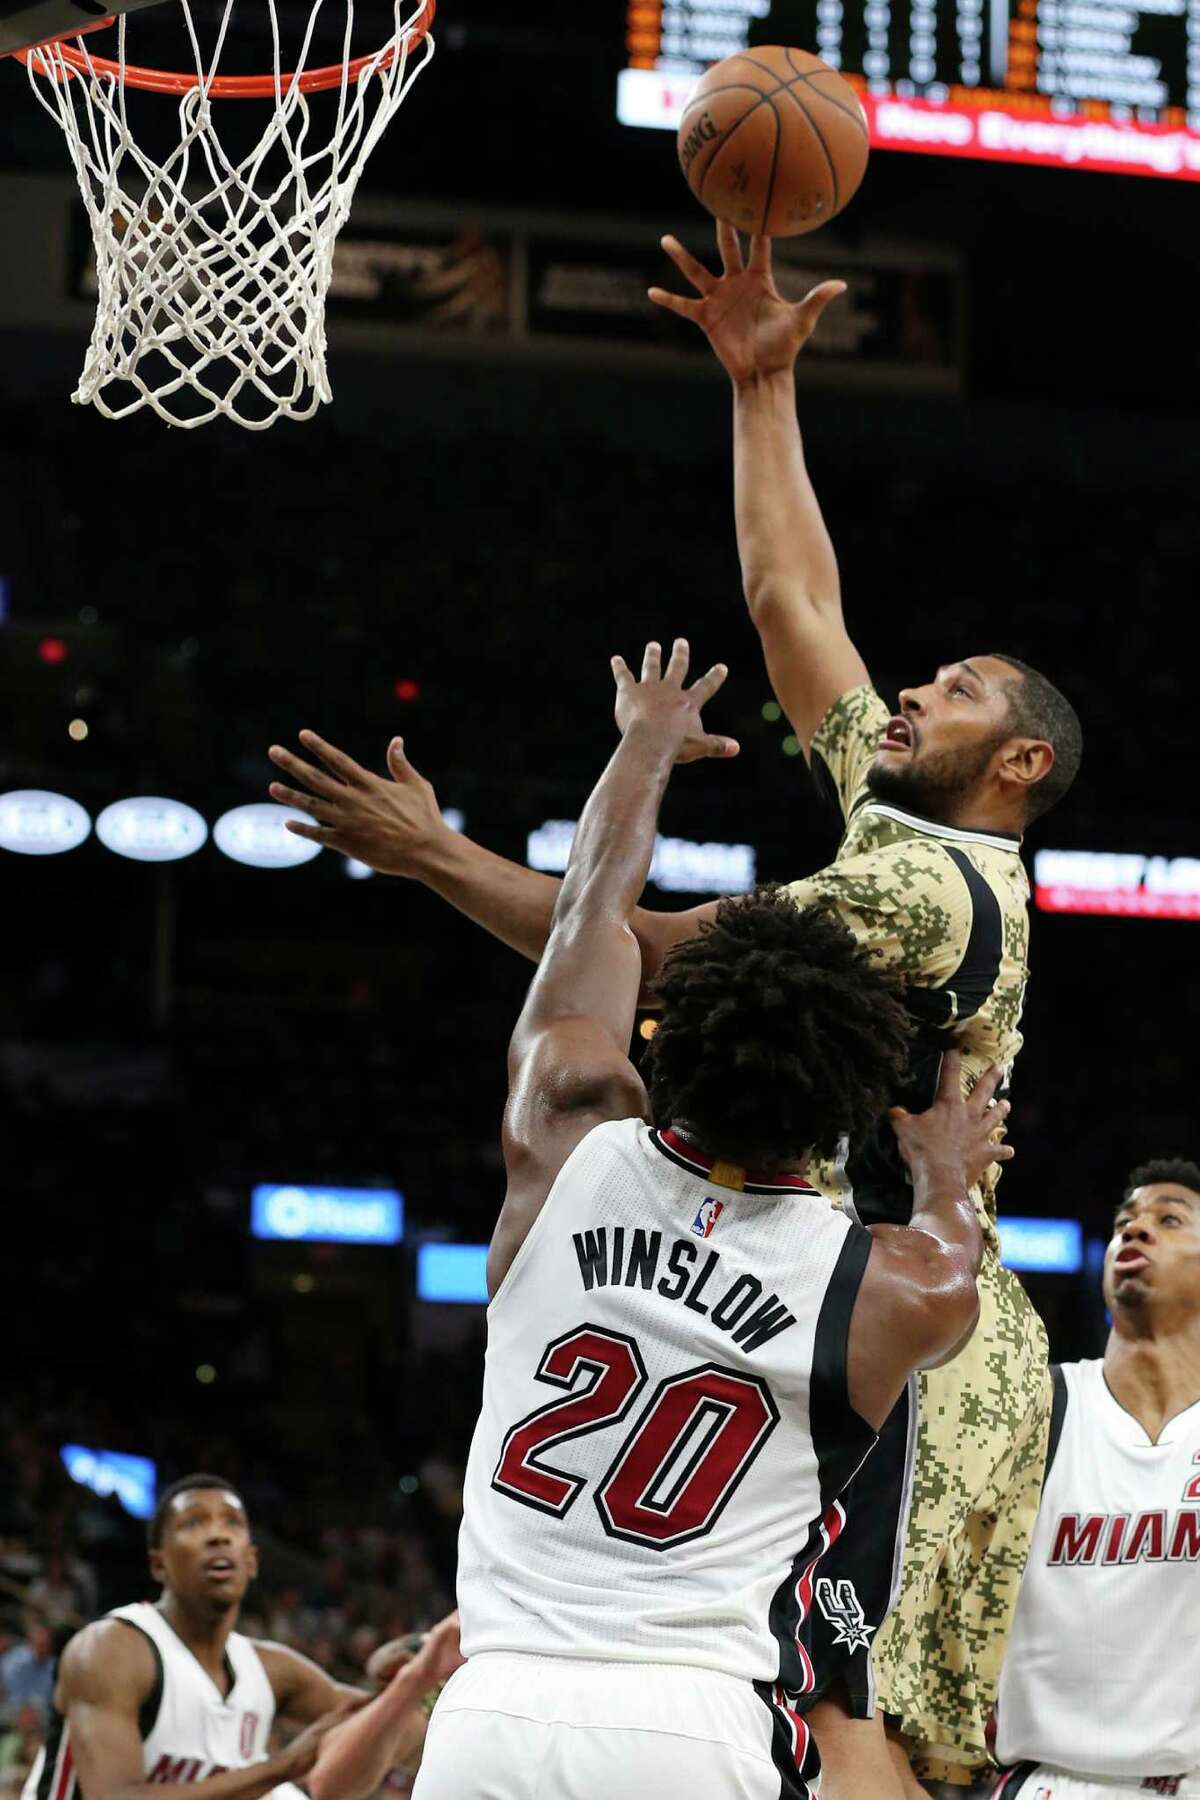 San Antonio Spurs' Boris Diaw shoots over Miami Heat's Justise Winslow during the first half at the AT&T Center, Wednesday, March 23, 2016.